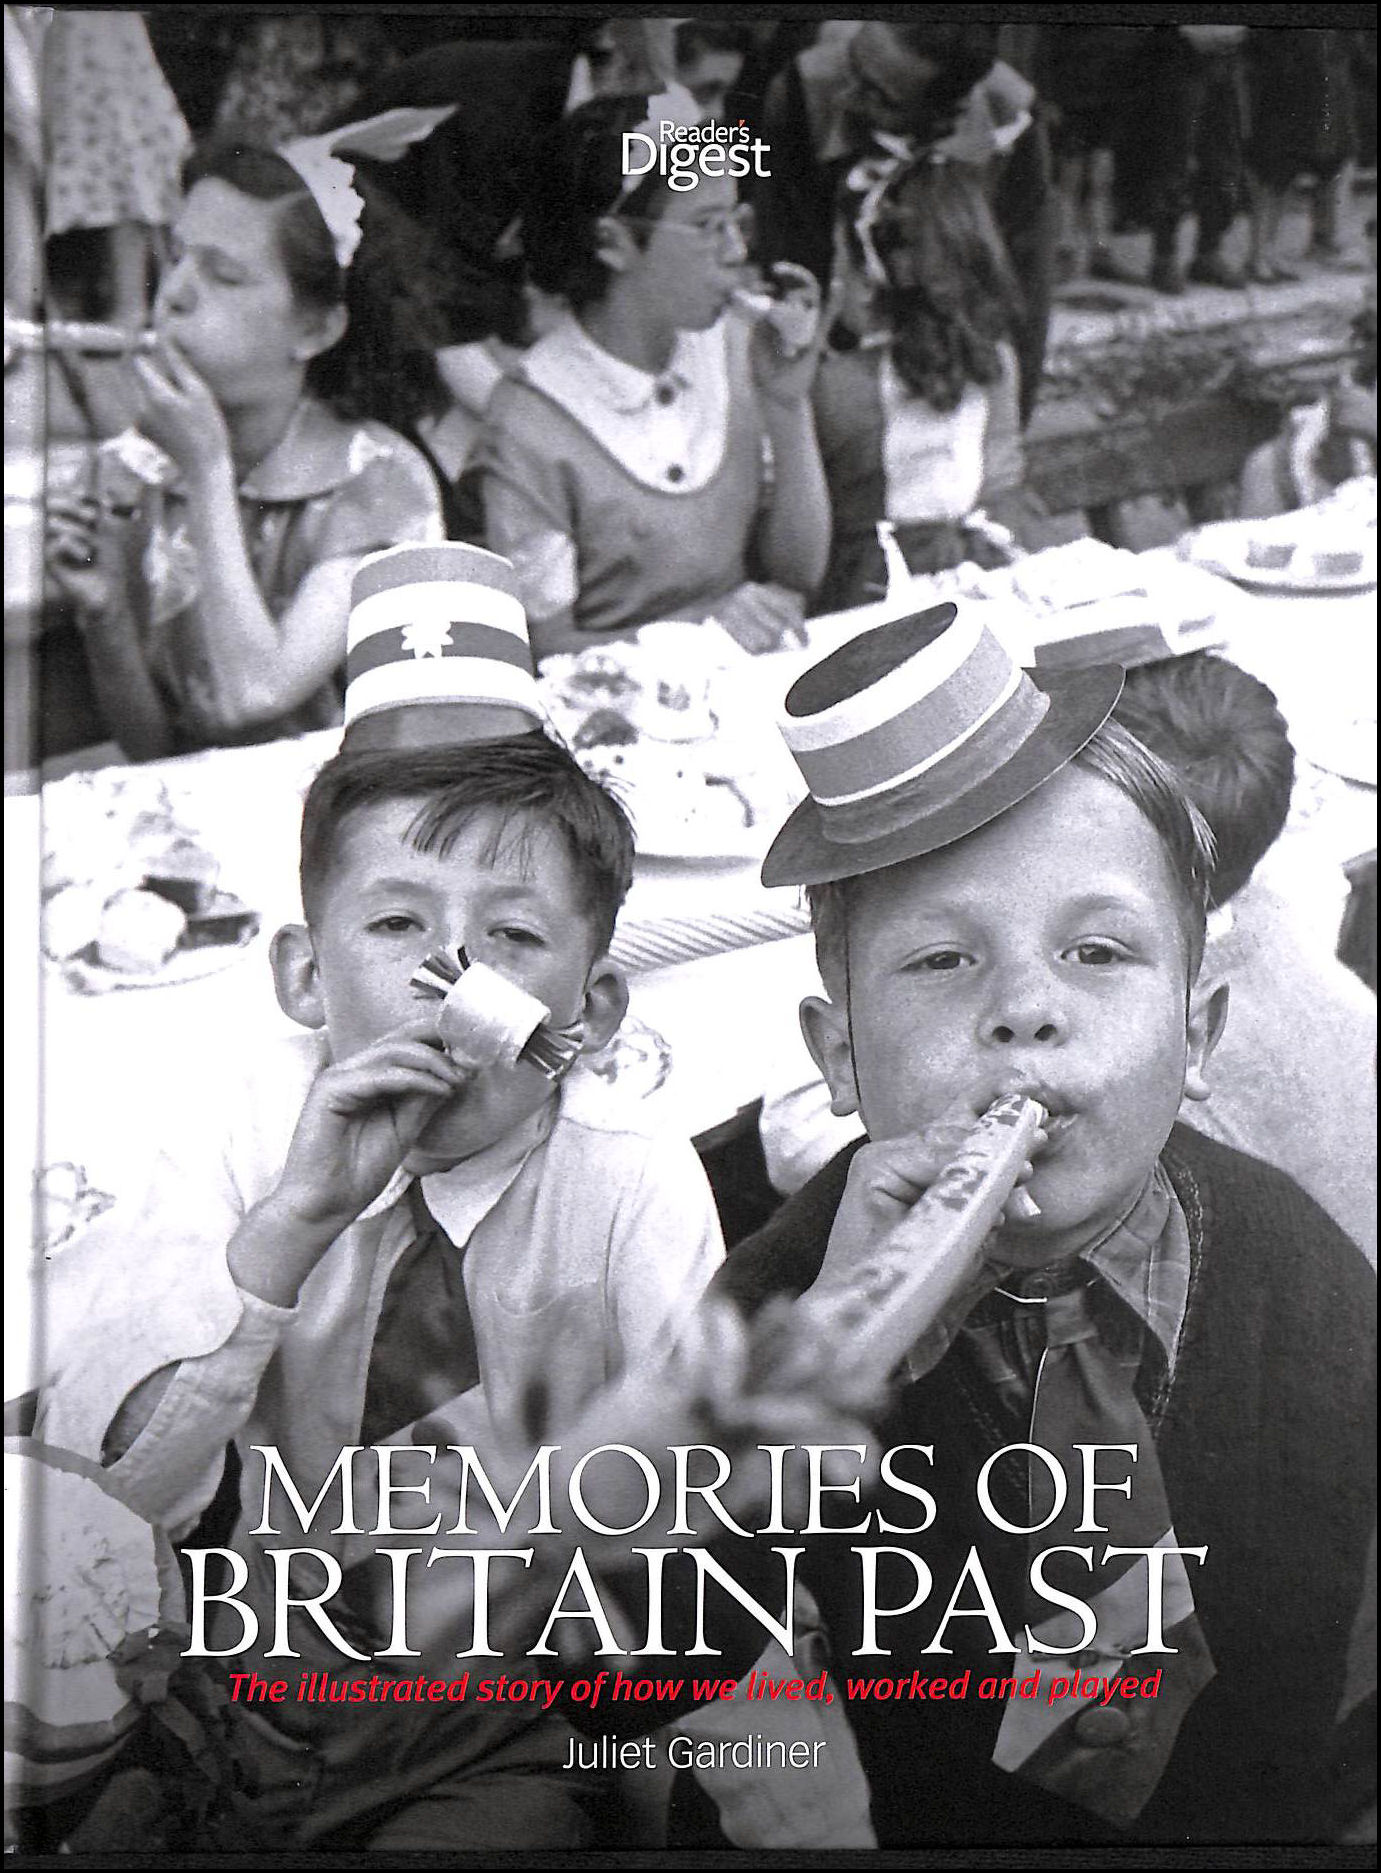 Memories of Britain Past: the Illustrated Story of How We Lived, Worked and Played, Reader's Digest